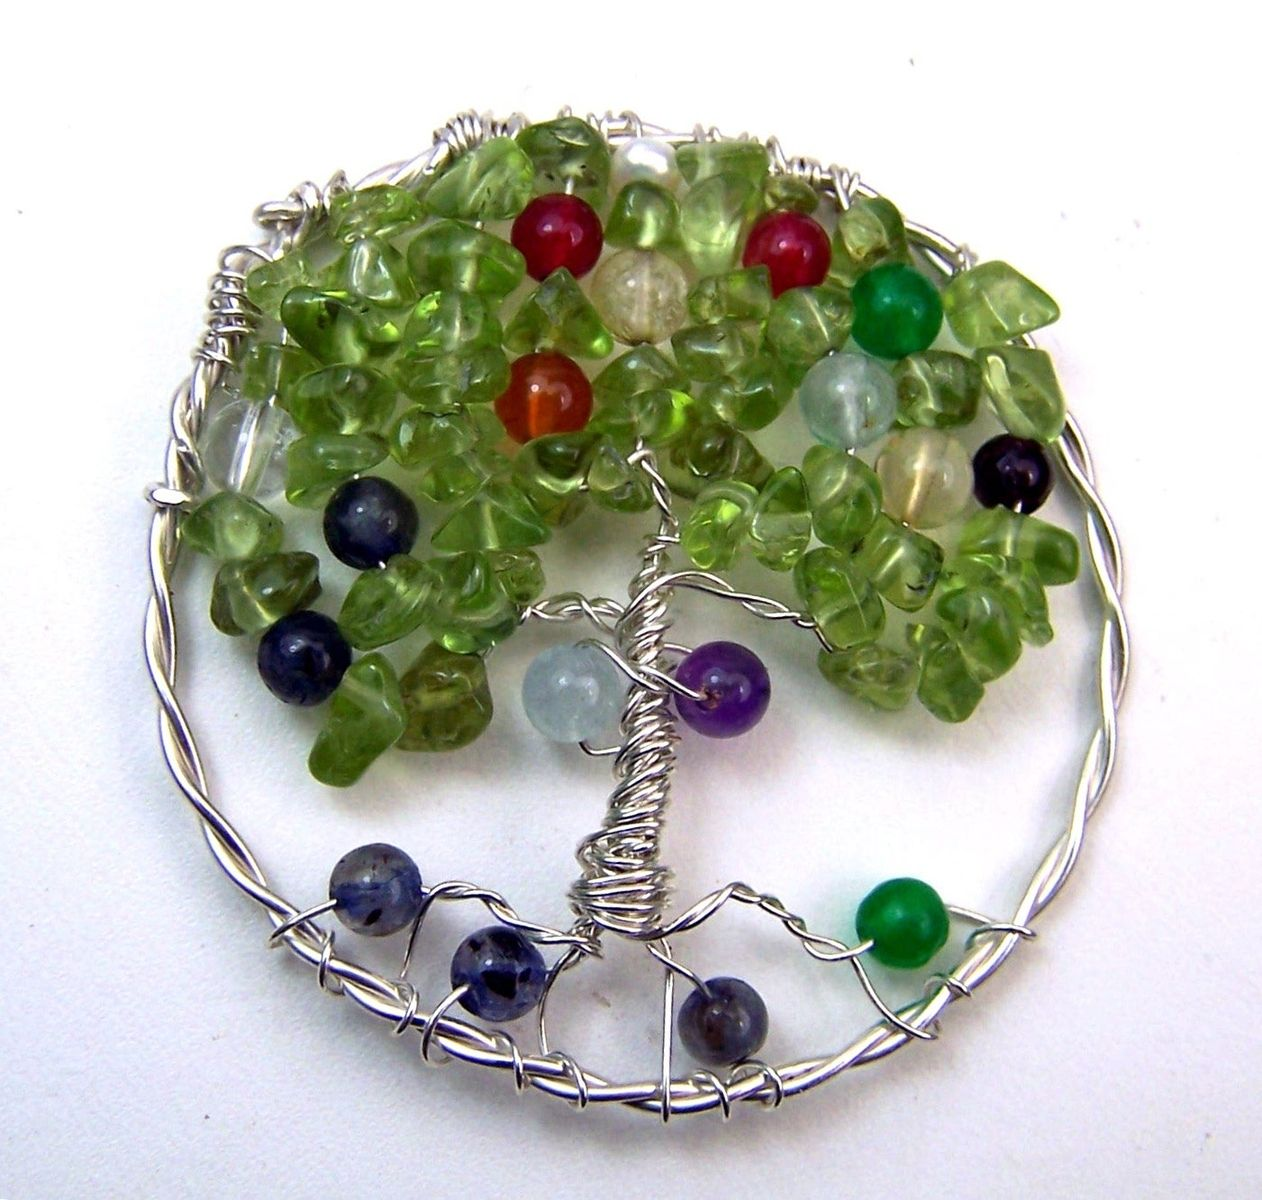 product page butler uk wilson tree qvc festive brooch crystal